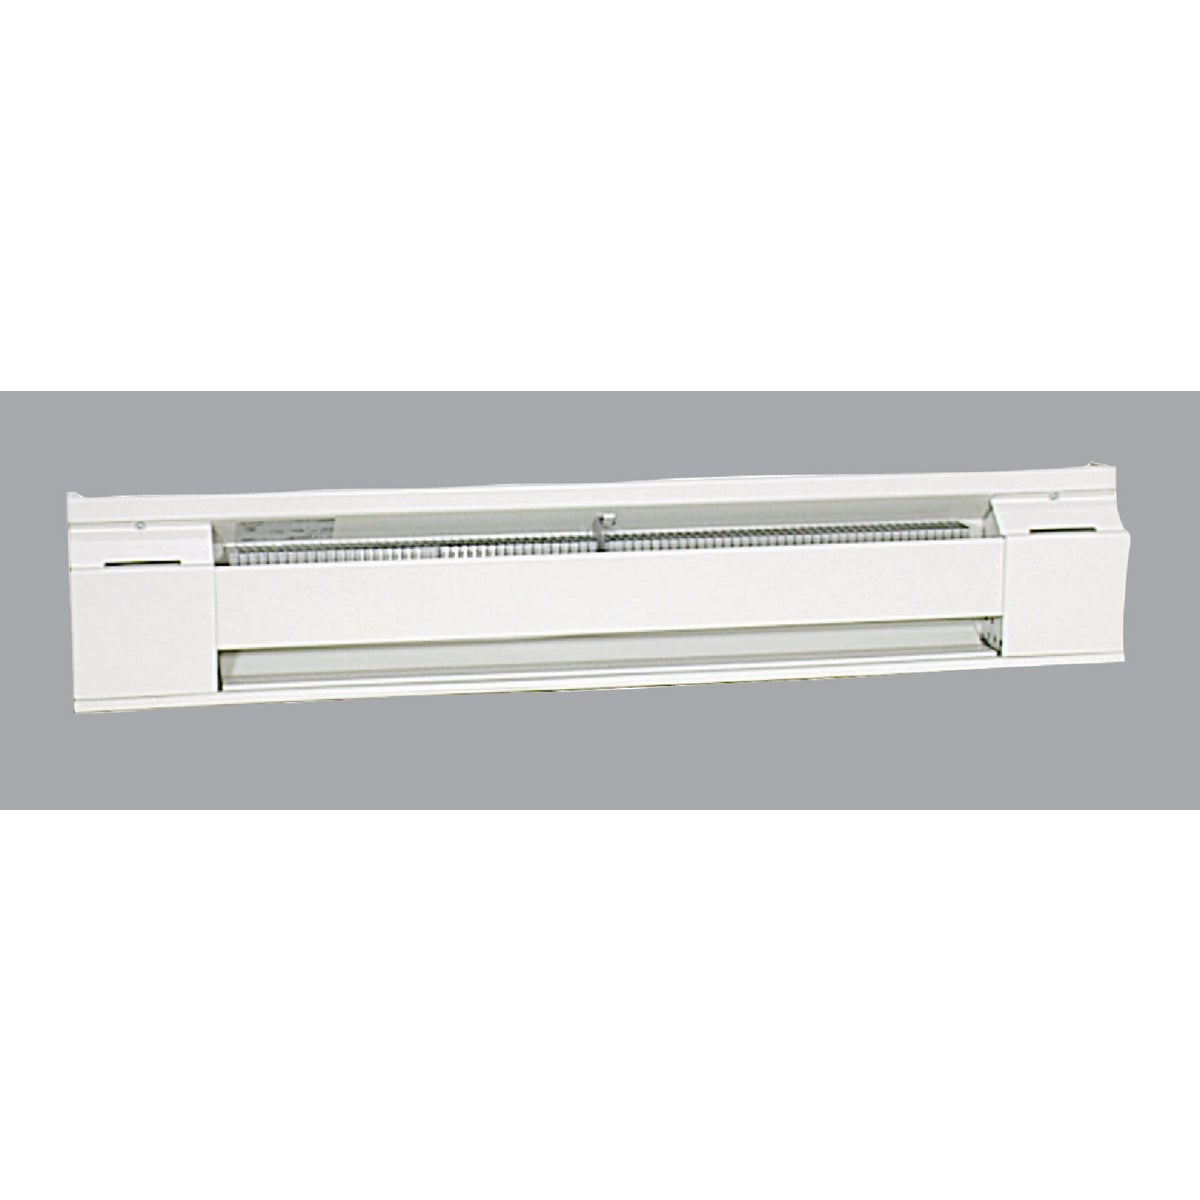 3' BASEBOARD HEATER - F2543 by Fahrenheat Marley